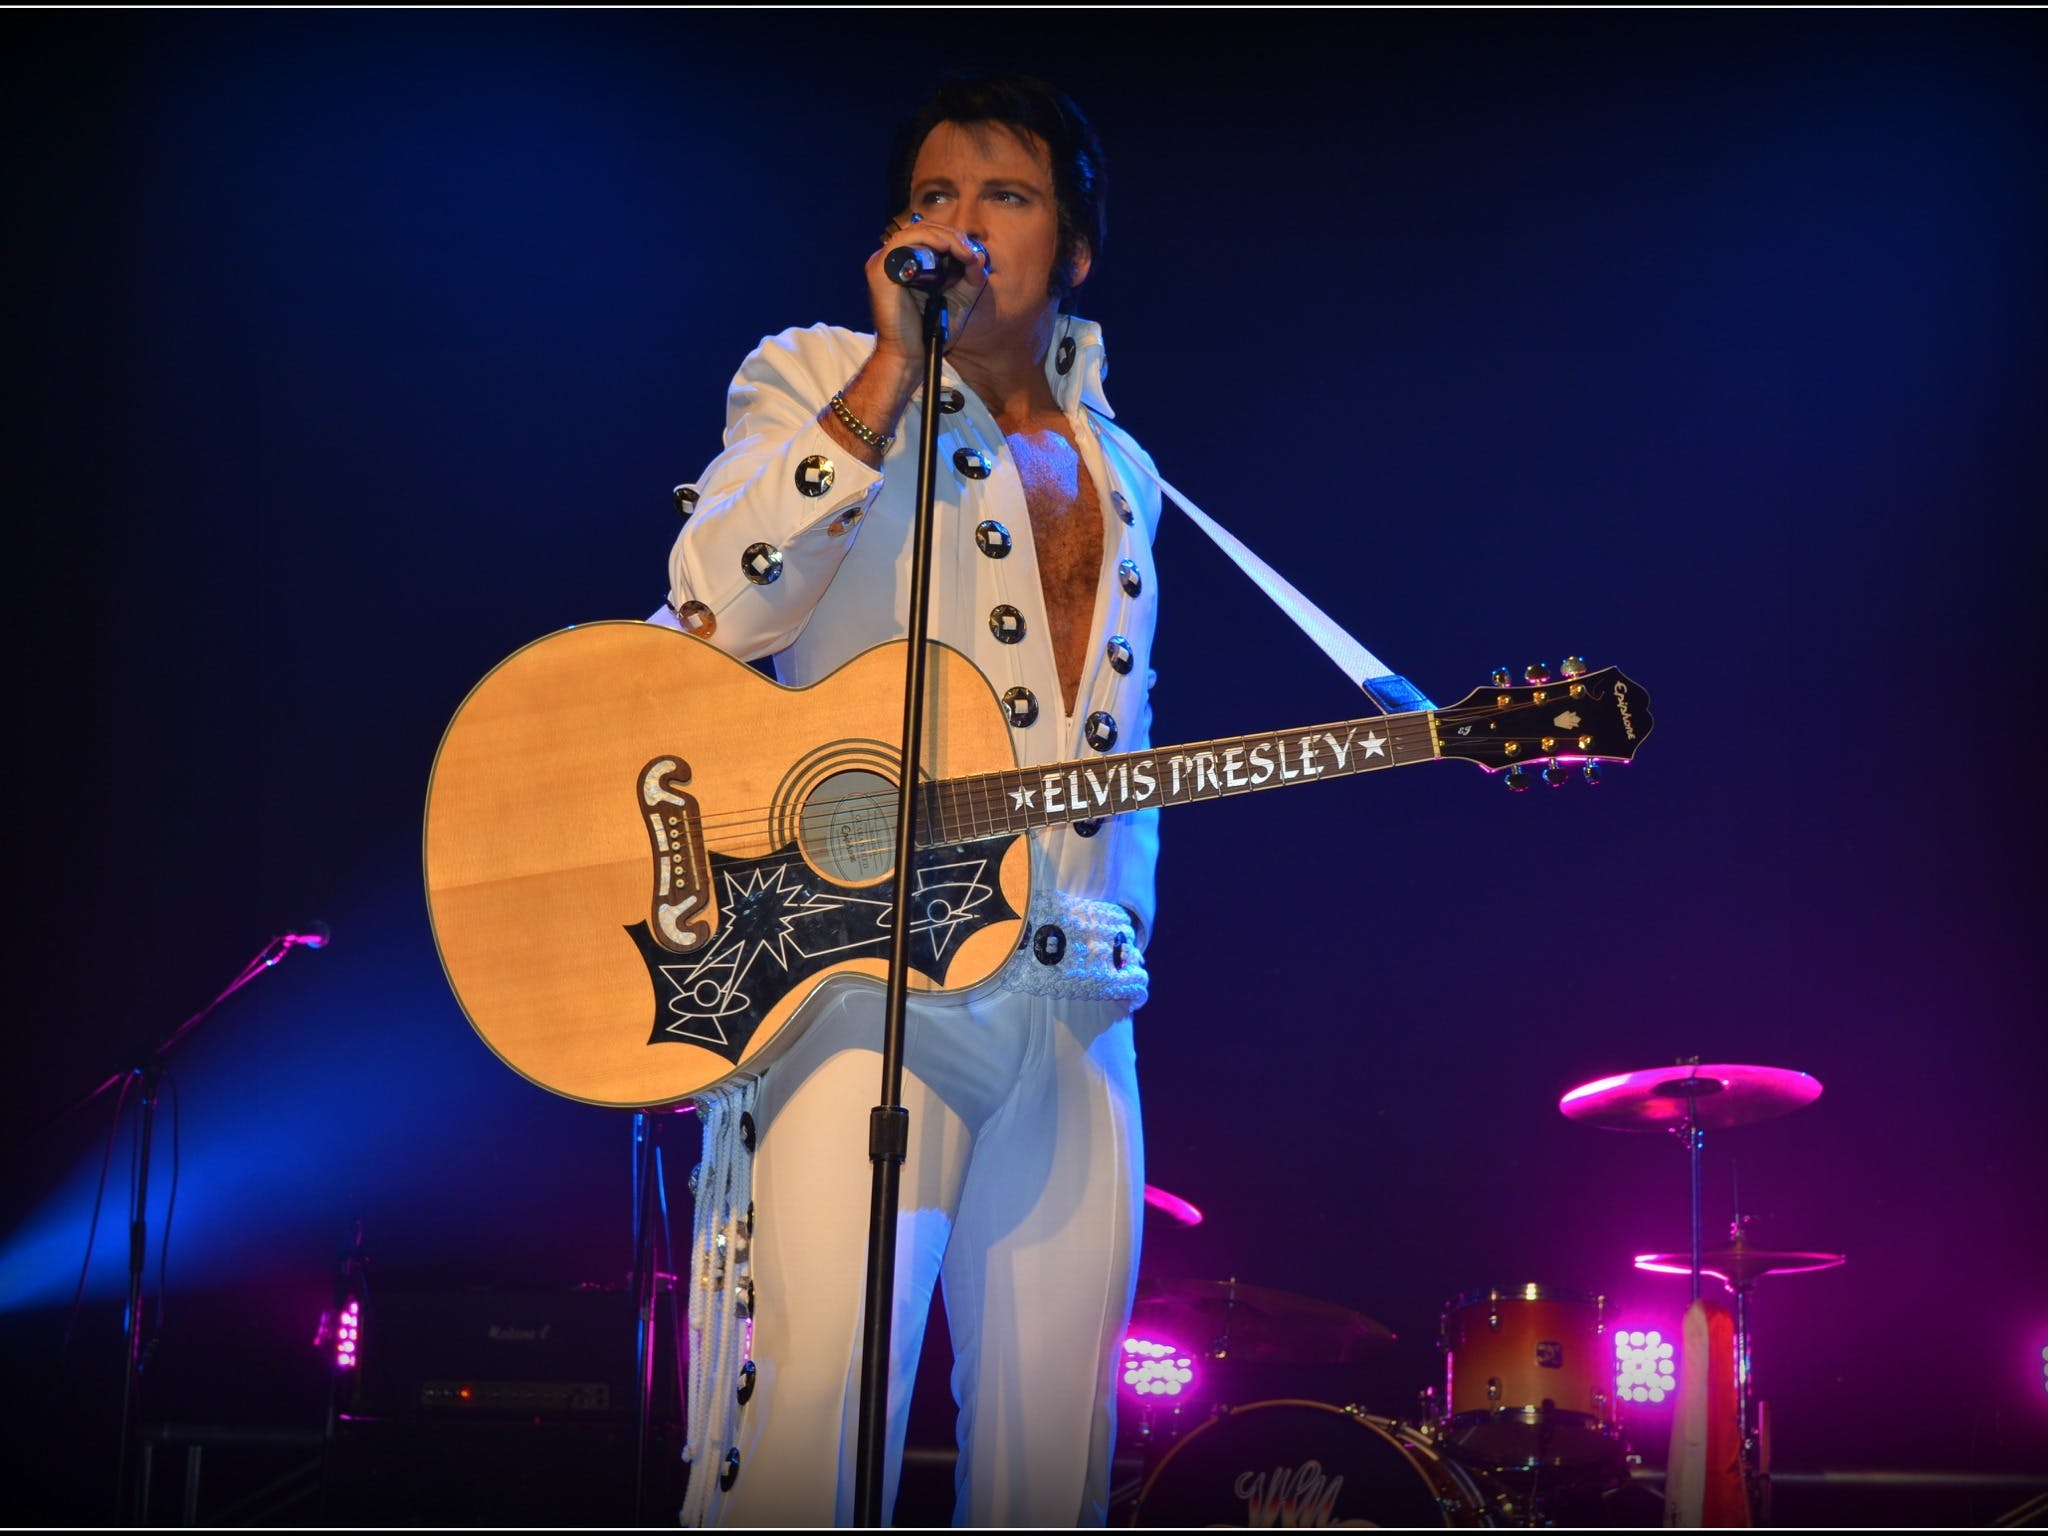 Elvis Forever - Damian Mullin 'Up Close and Personal' - Tourism Brisbane